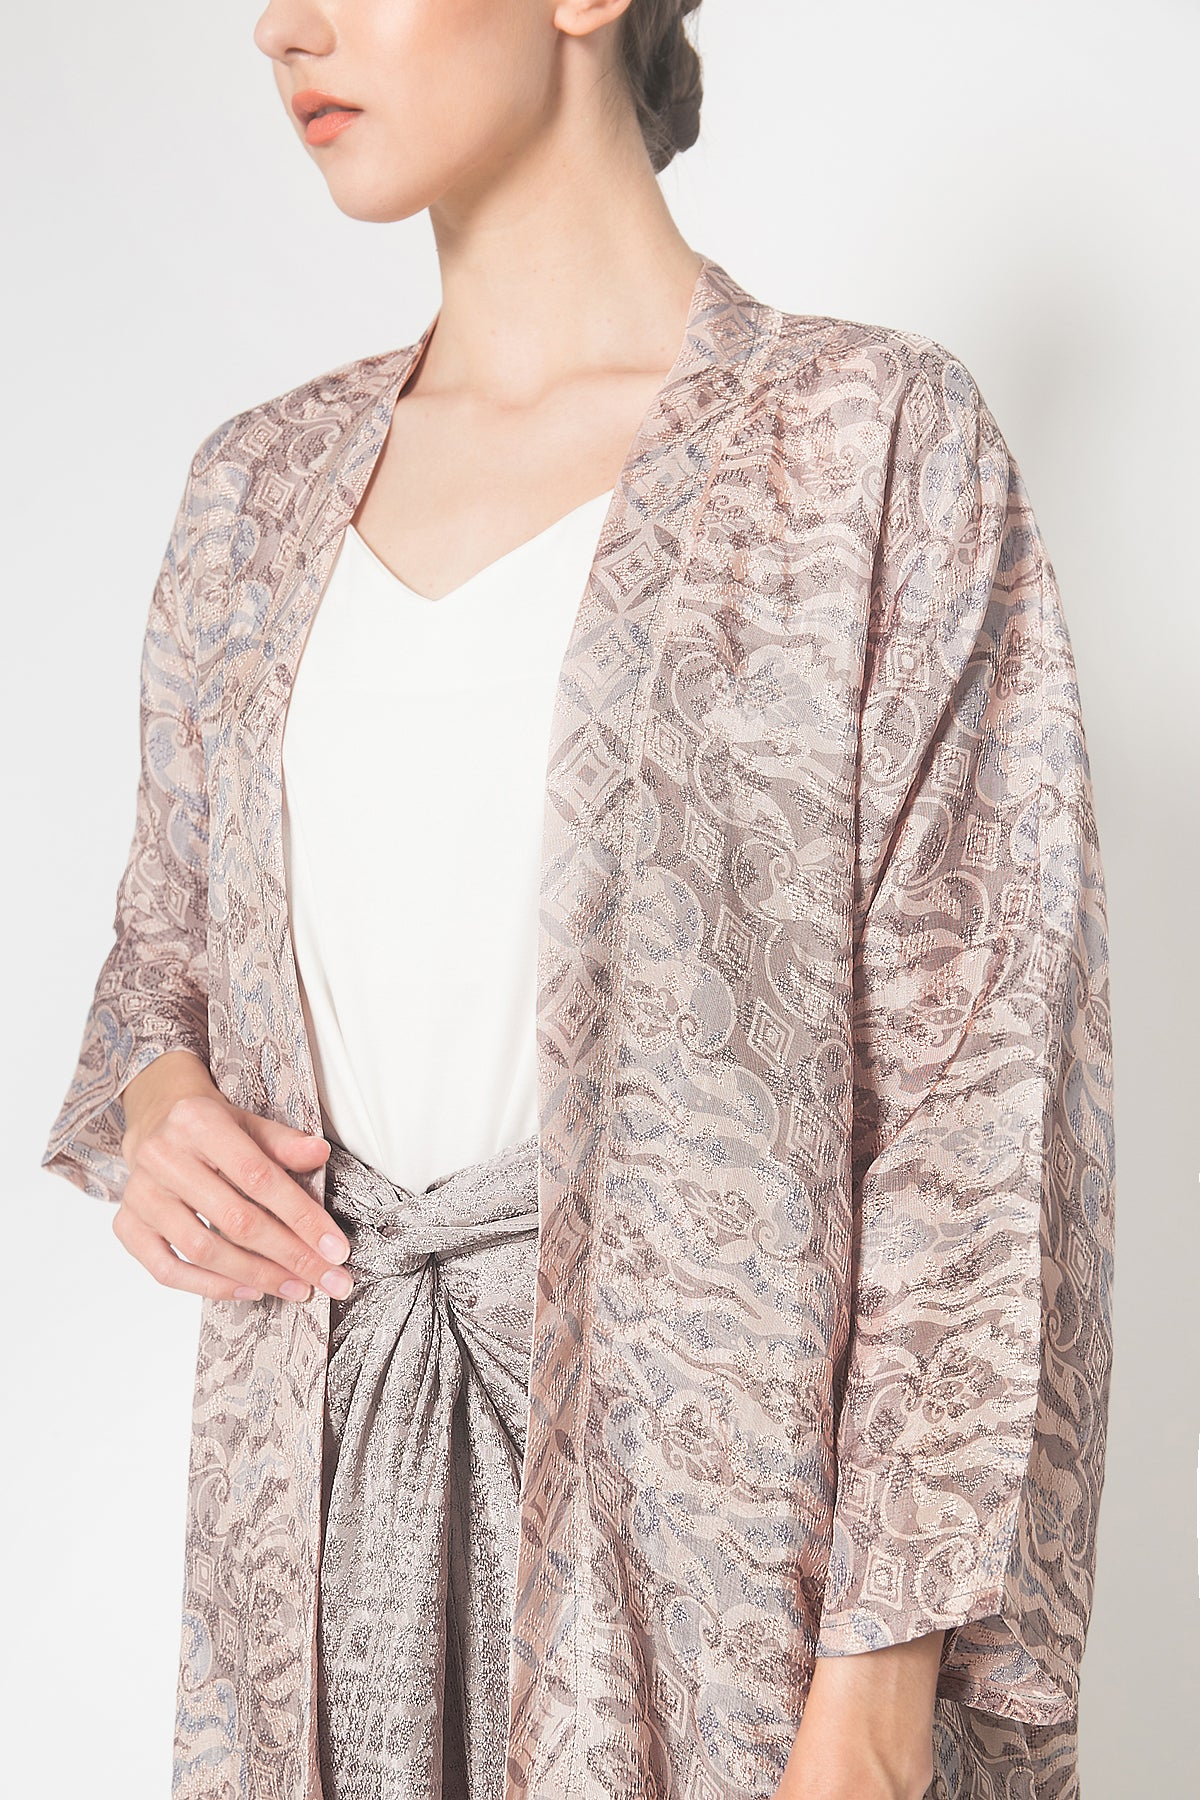 Meraki Outer Set in Dusk Grey